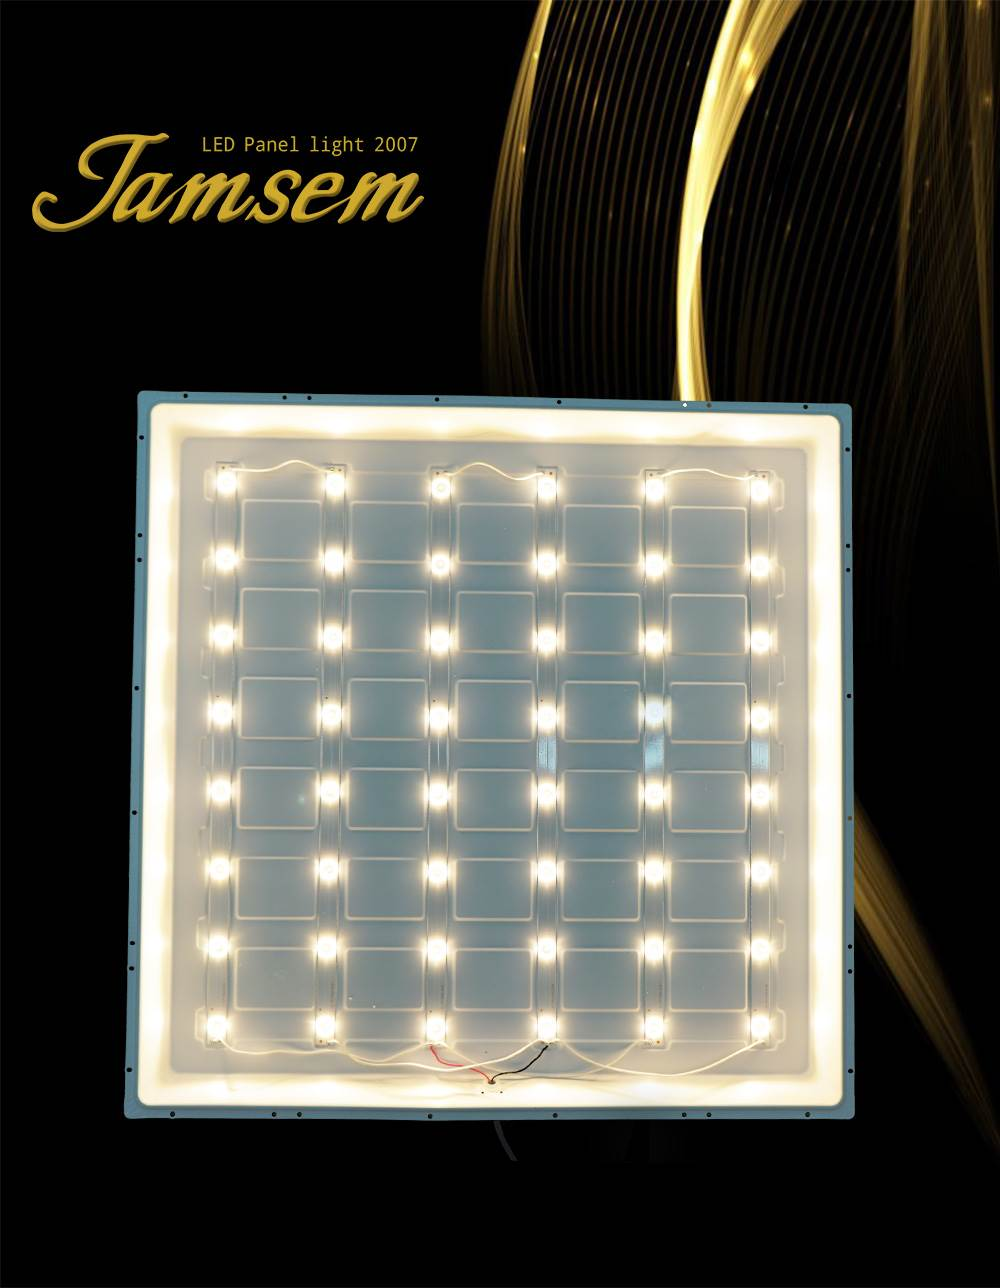 LED backlit panel light 60x60 Backlight Panel lighting LED lamp products